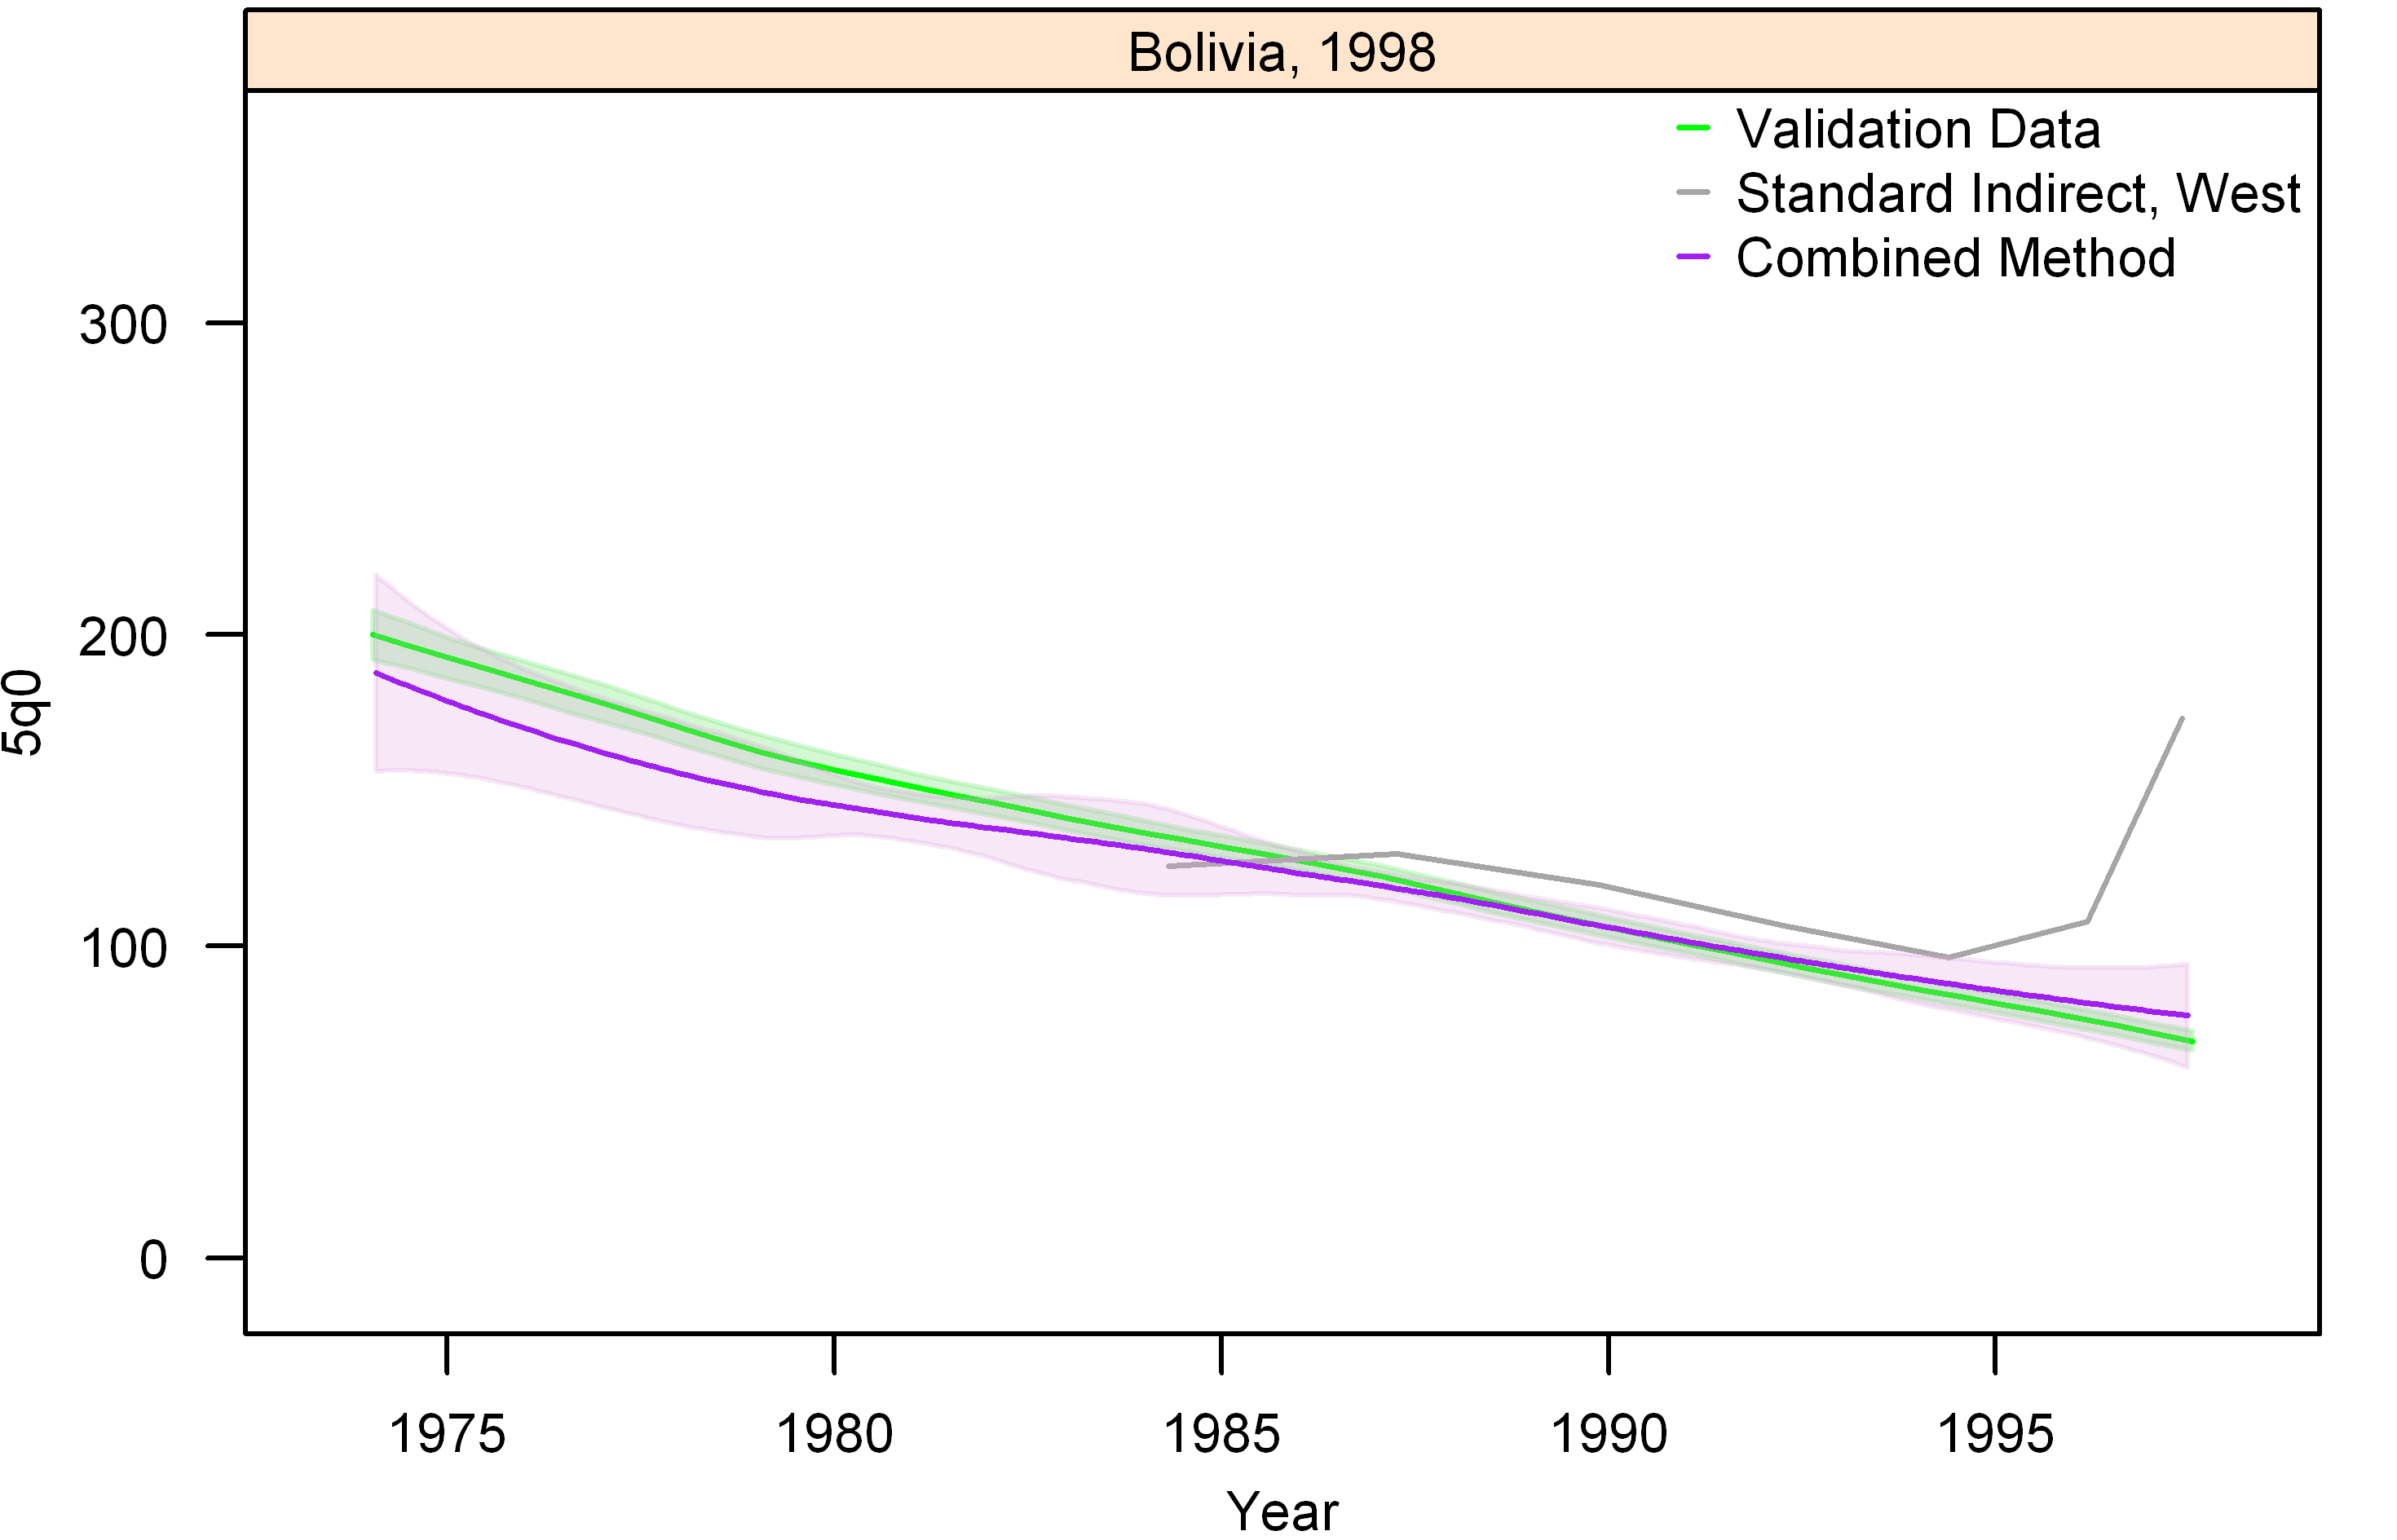 Graphs of estimates from summary birth histories using the best-performing combined method and the standard indirect (West) method. Section I, Bolivia, 1998.